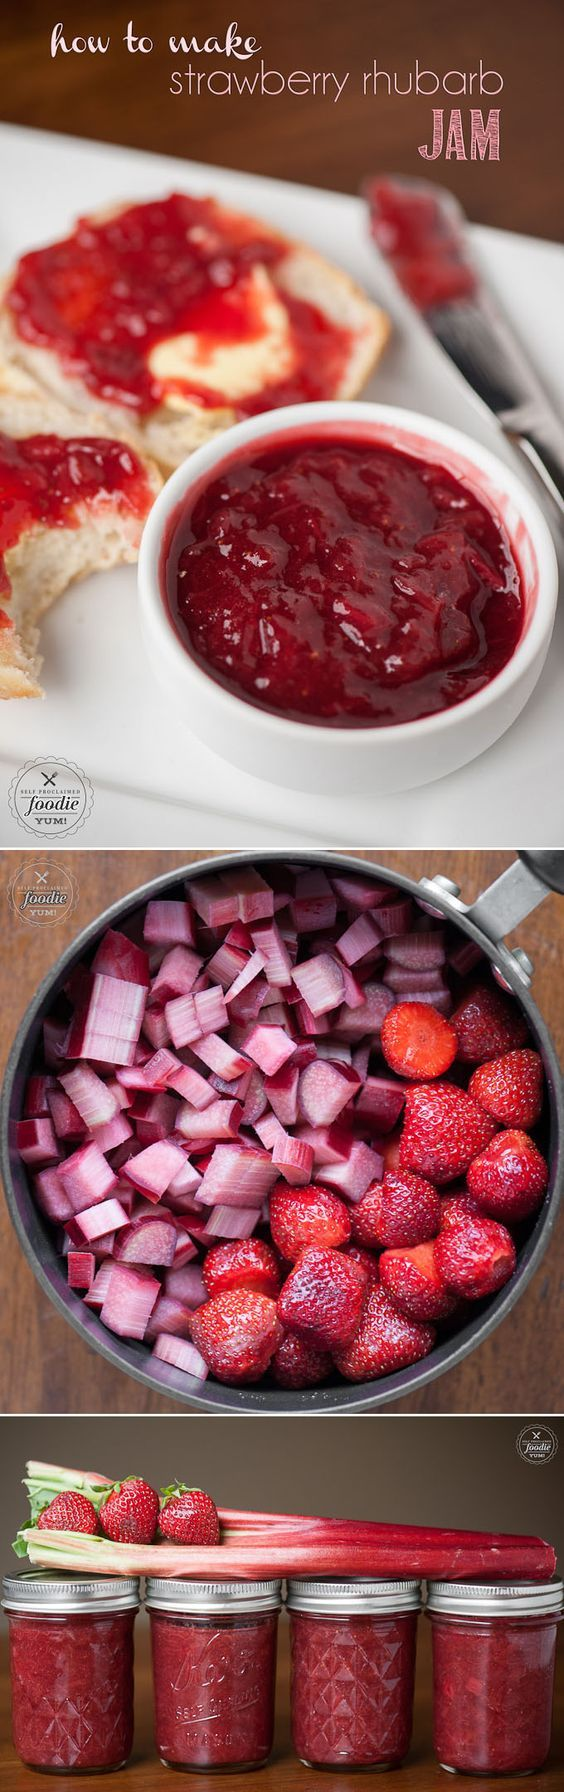 Canning in jars is easy when you know How to Make Strawberry Rhubarb Jam from…